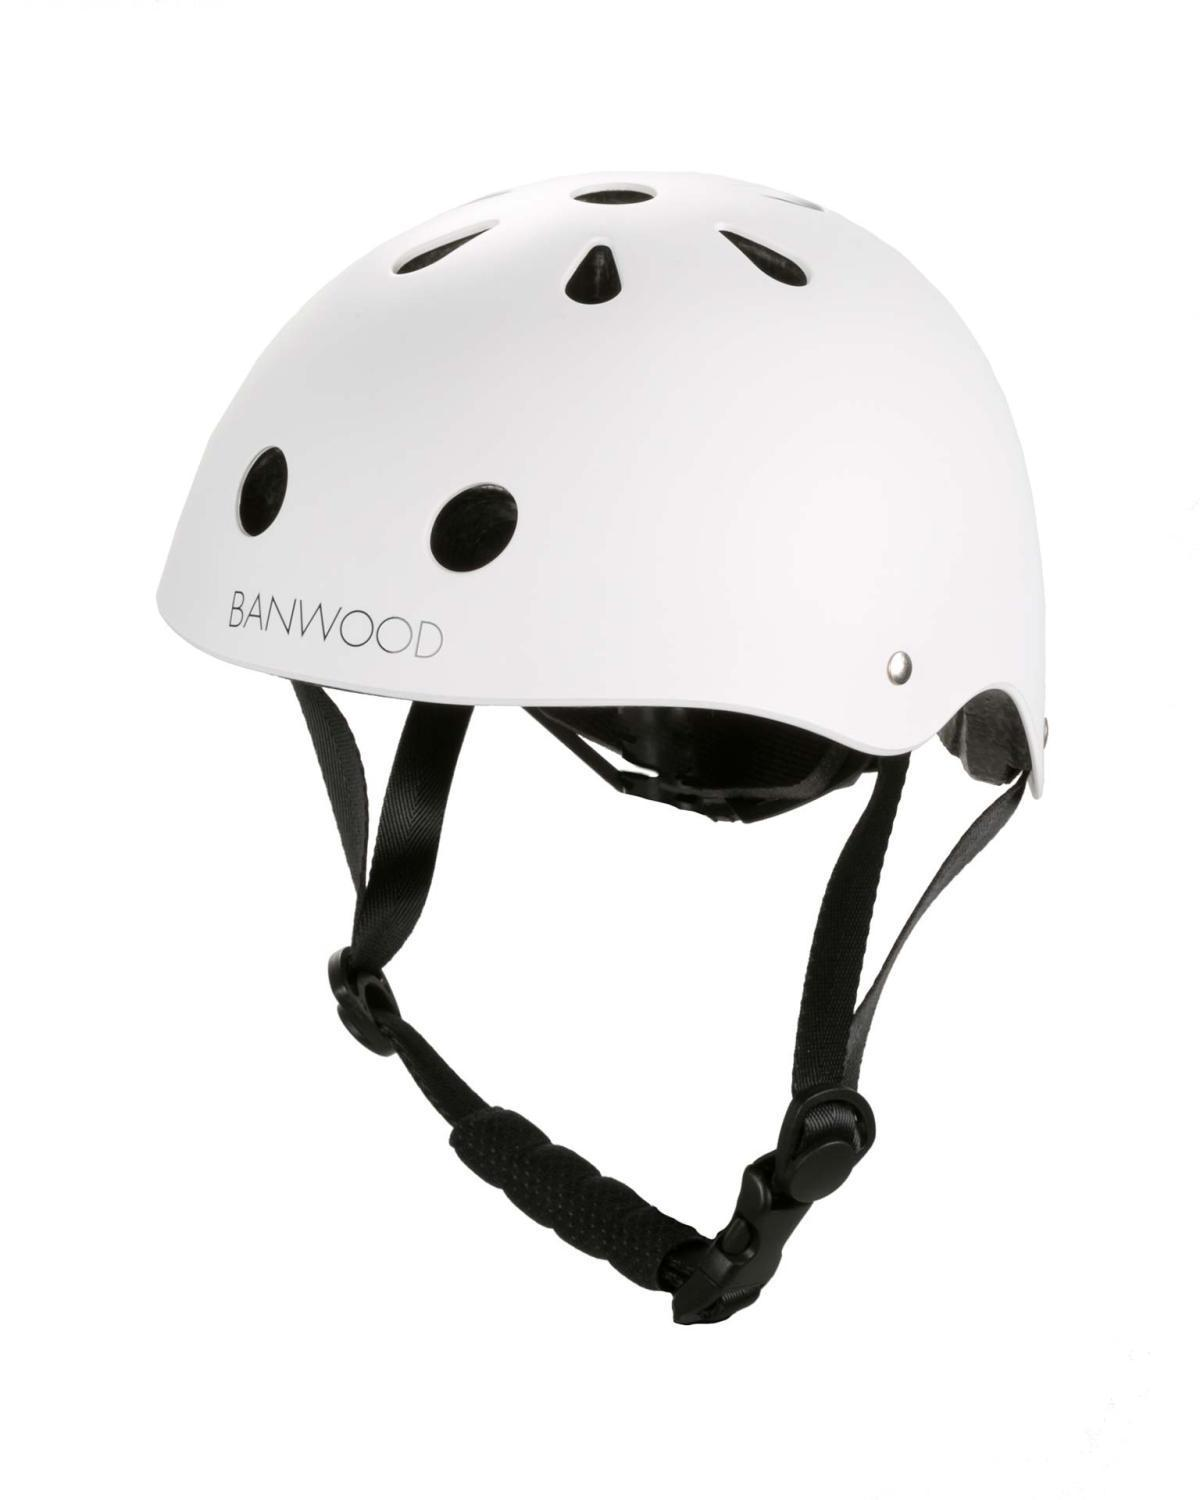 Little banwood play classic helmet in matte white